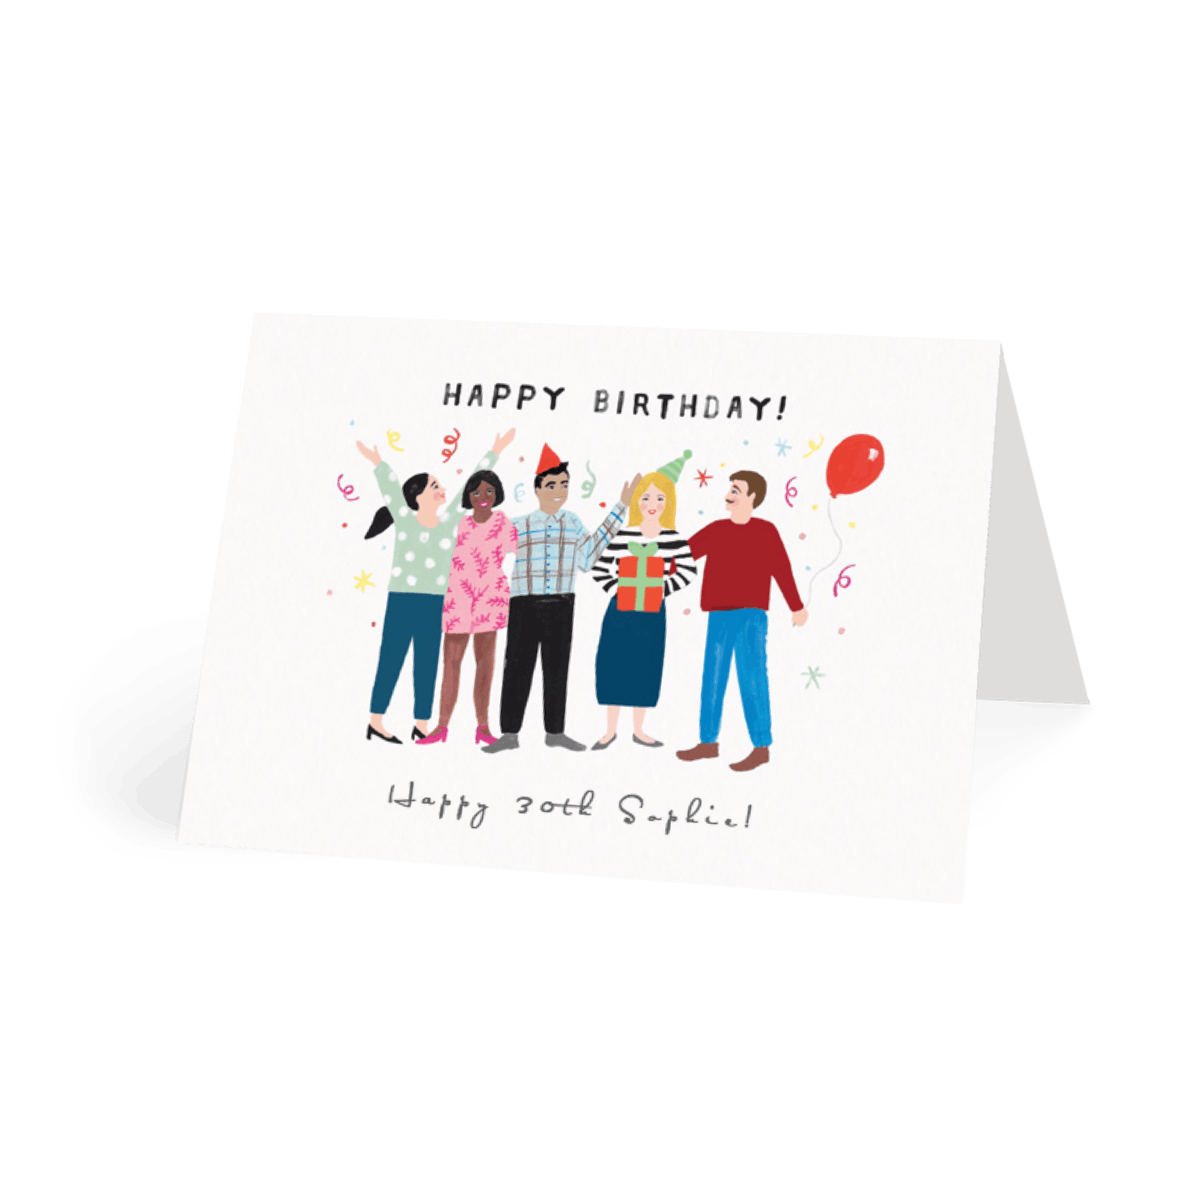 Https%3a%2f%2fwww.papier.com%2fproduct image%2f11249%2f14%2fbirthday party 2860 front 1474650259.png?ixlib=rb 1.1